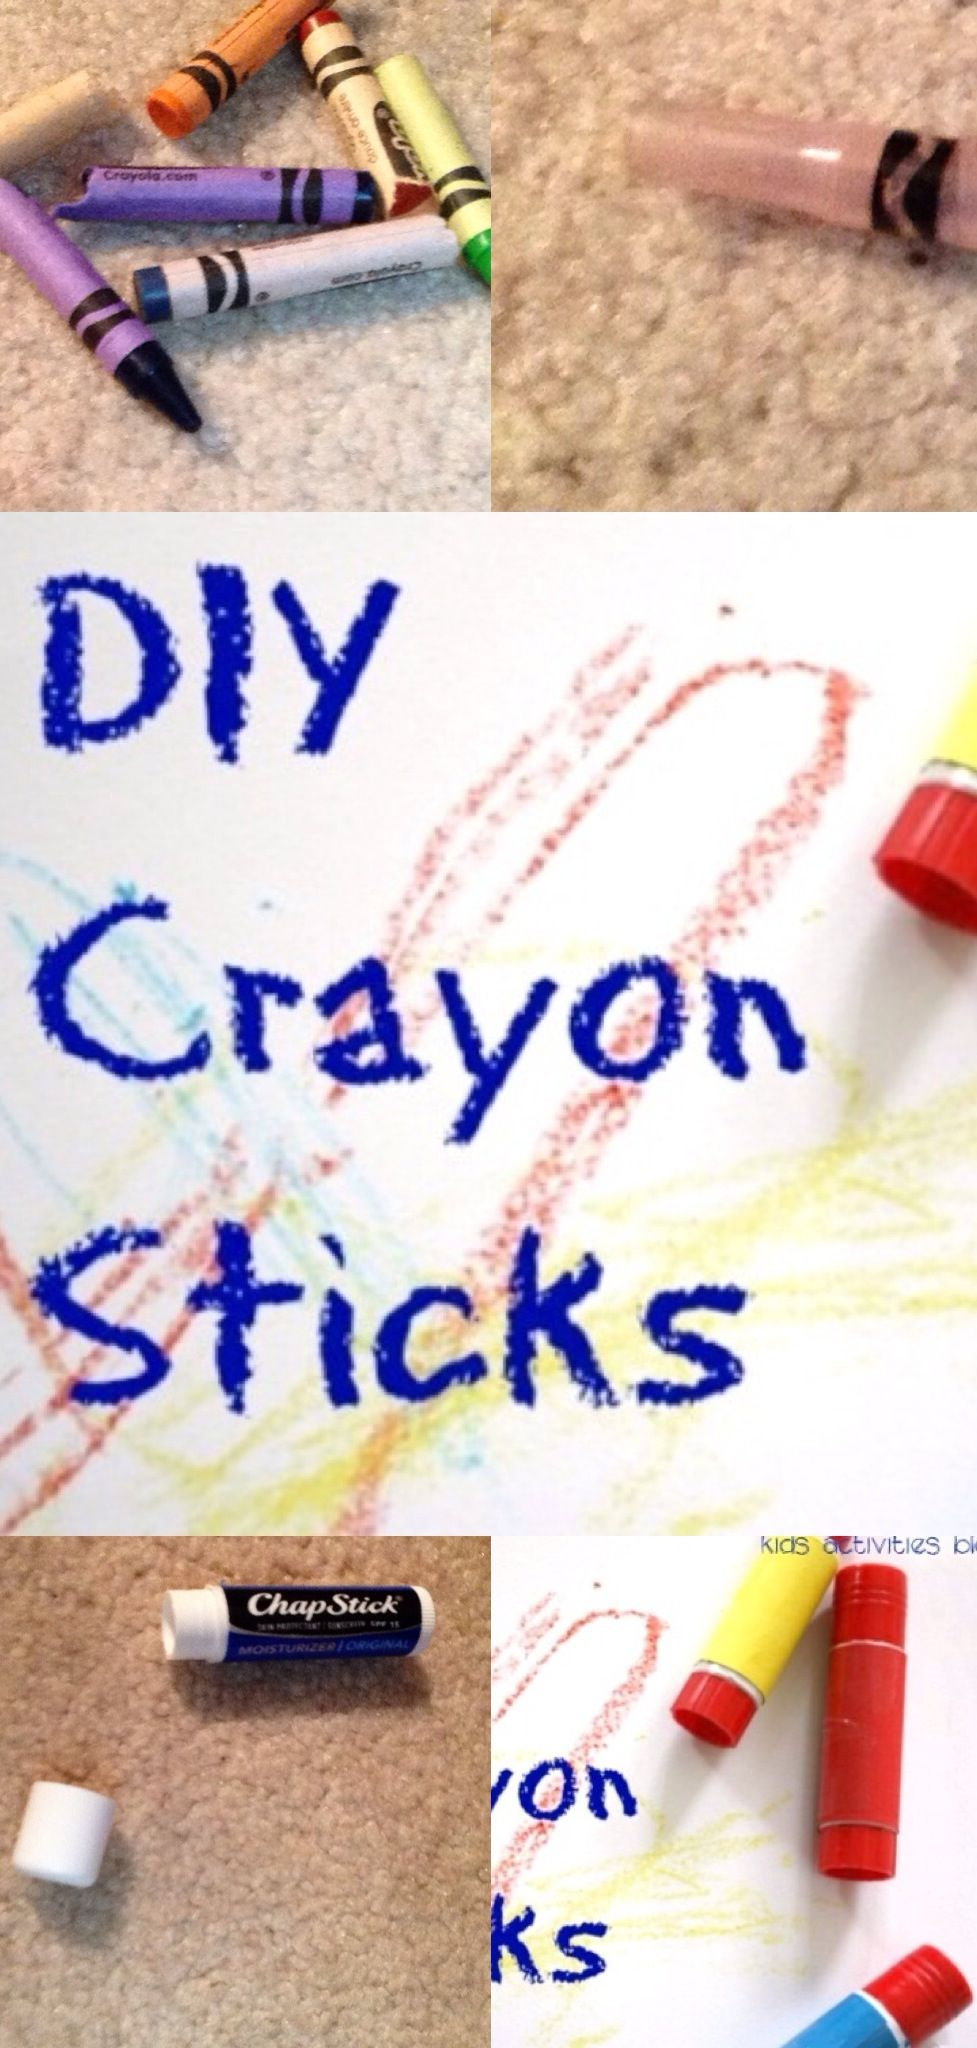 I've been thinking if you can put melted crayons into an empty glue stick what else can you do? I thought of an empty twistable (one of the thicker kinds) and empty chap stick tubes.